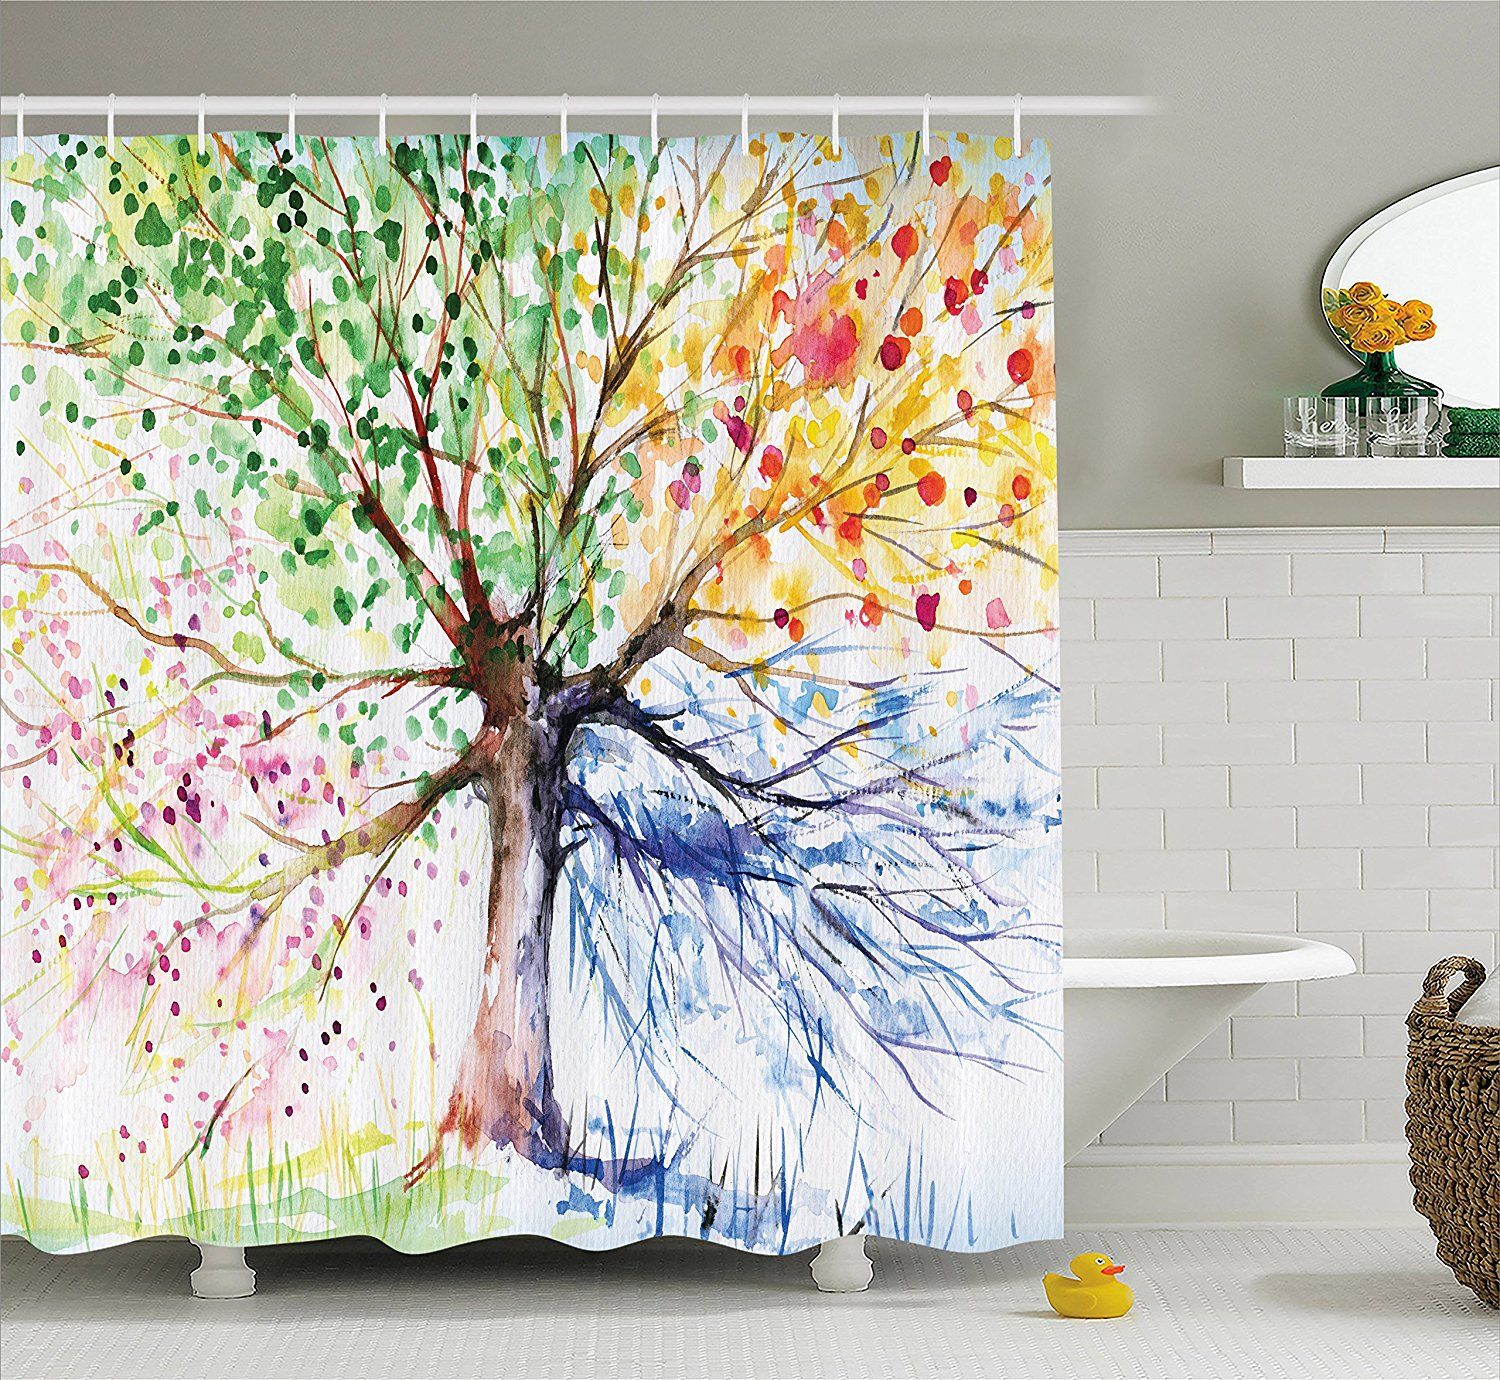 Us 13 02 43 Off Colorful Tree Four Seasons Shower Curtain Berry Green Red Yellow Navy Brown Extra Long Bath Decorations Bathroom Decor Set In